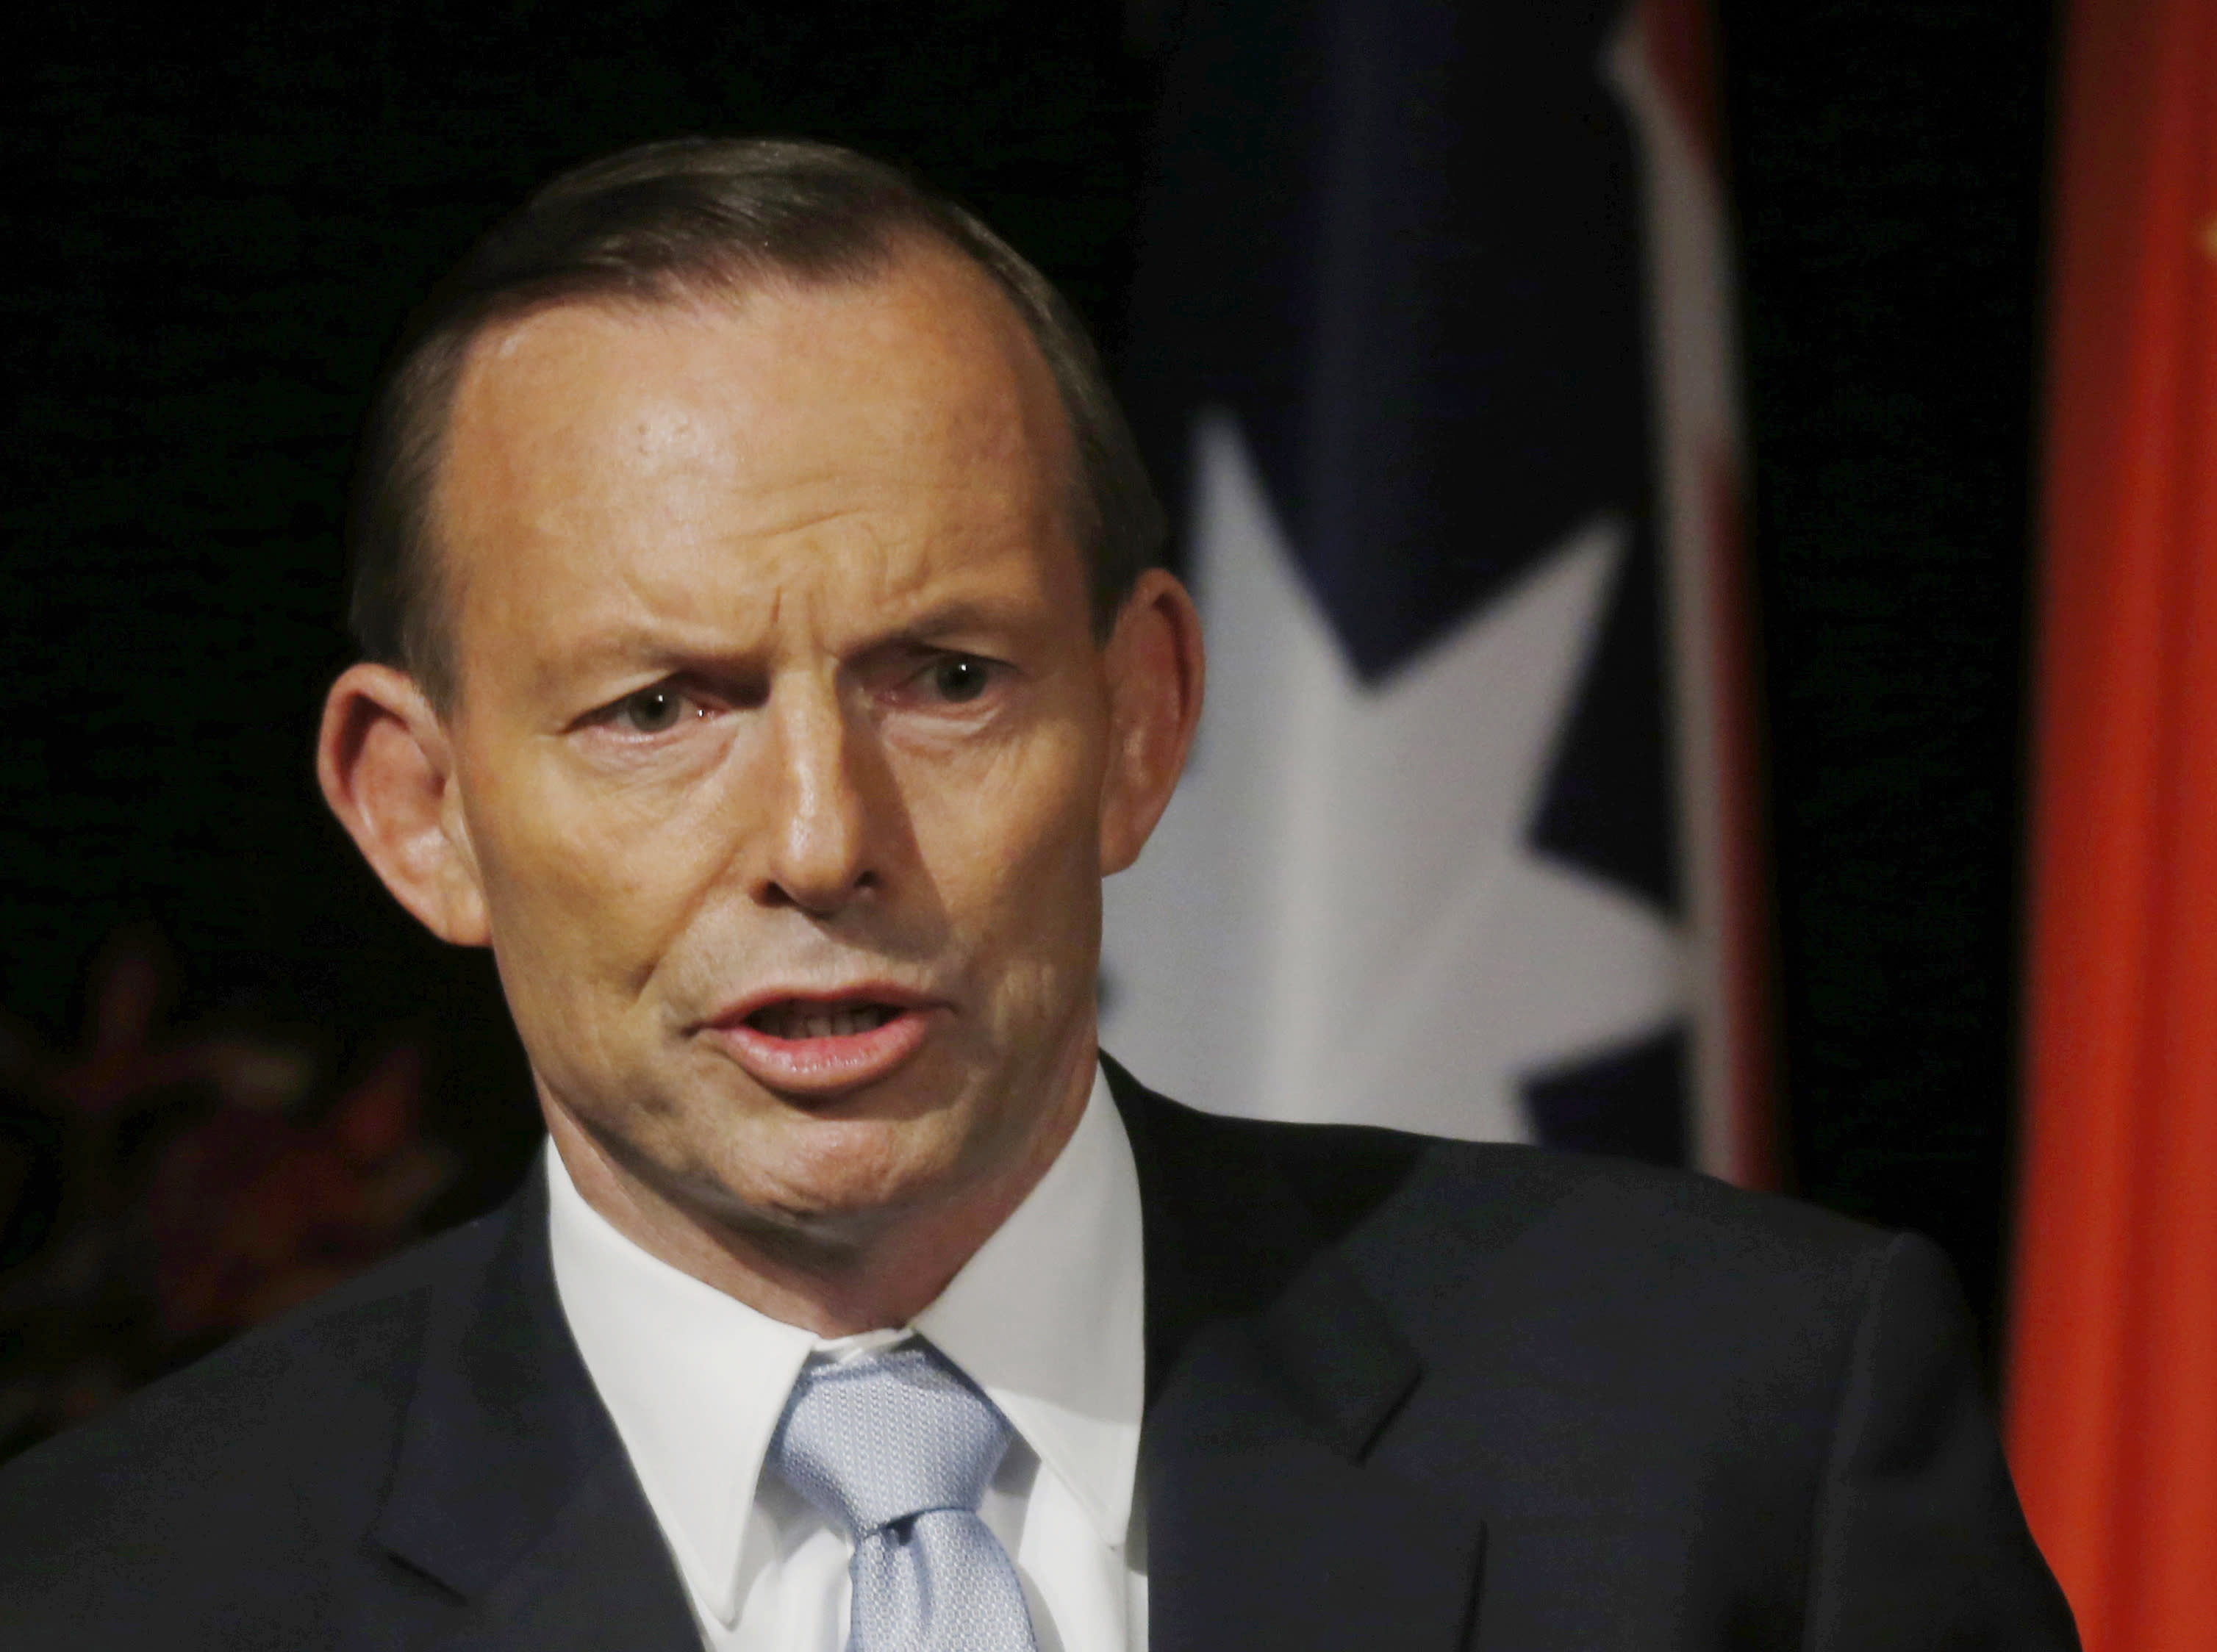 Australian leader vows to consult more widely on knighthoods